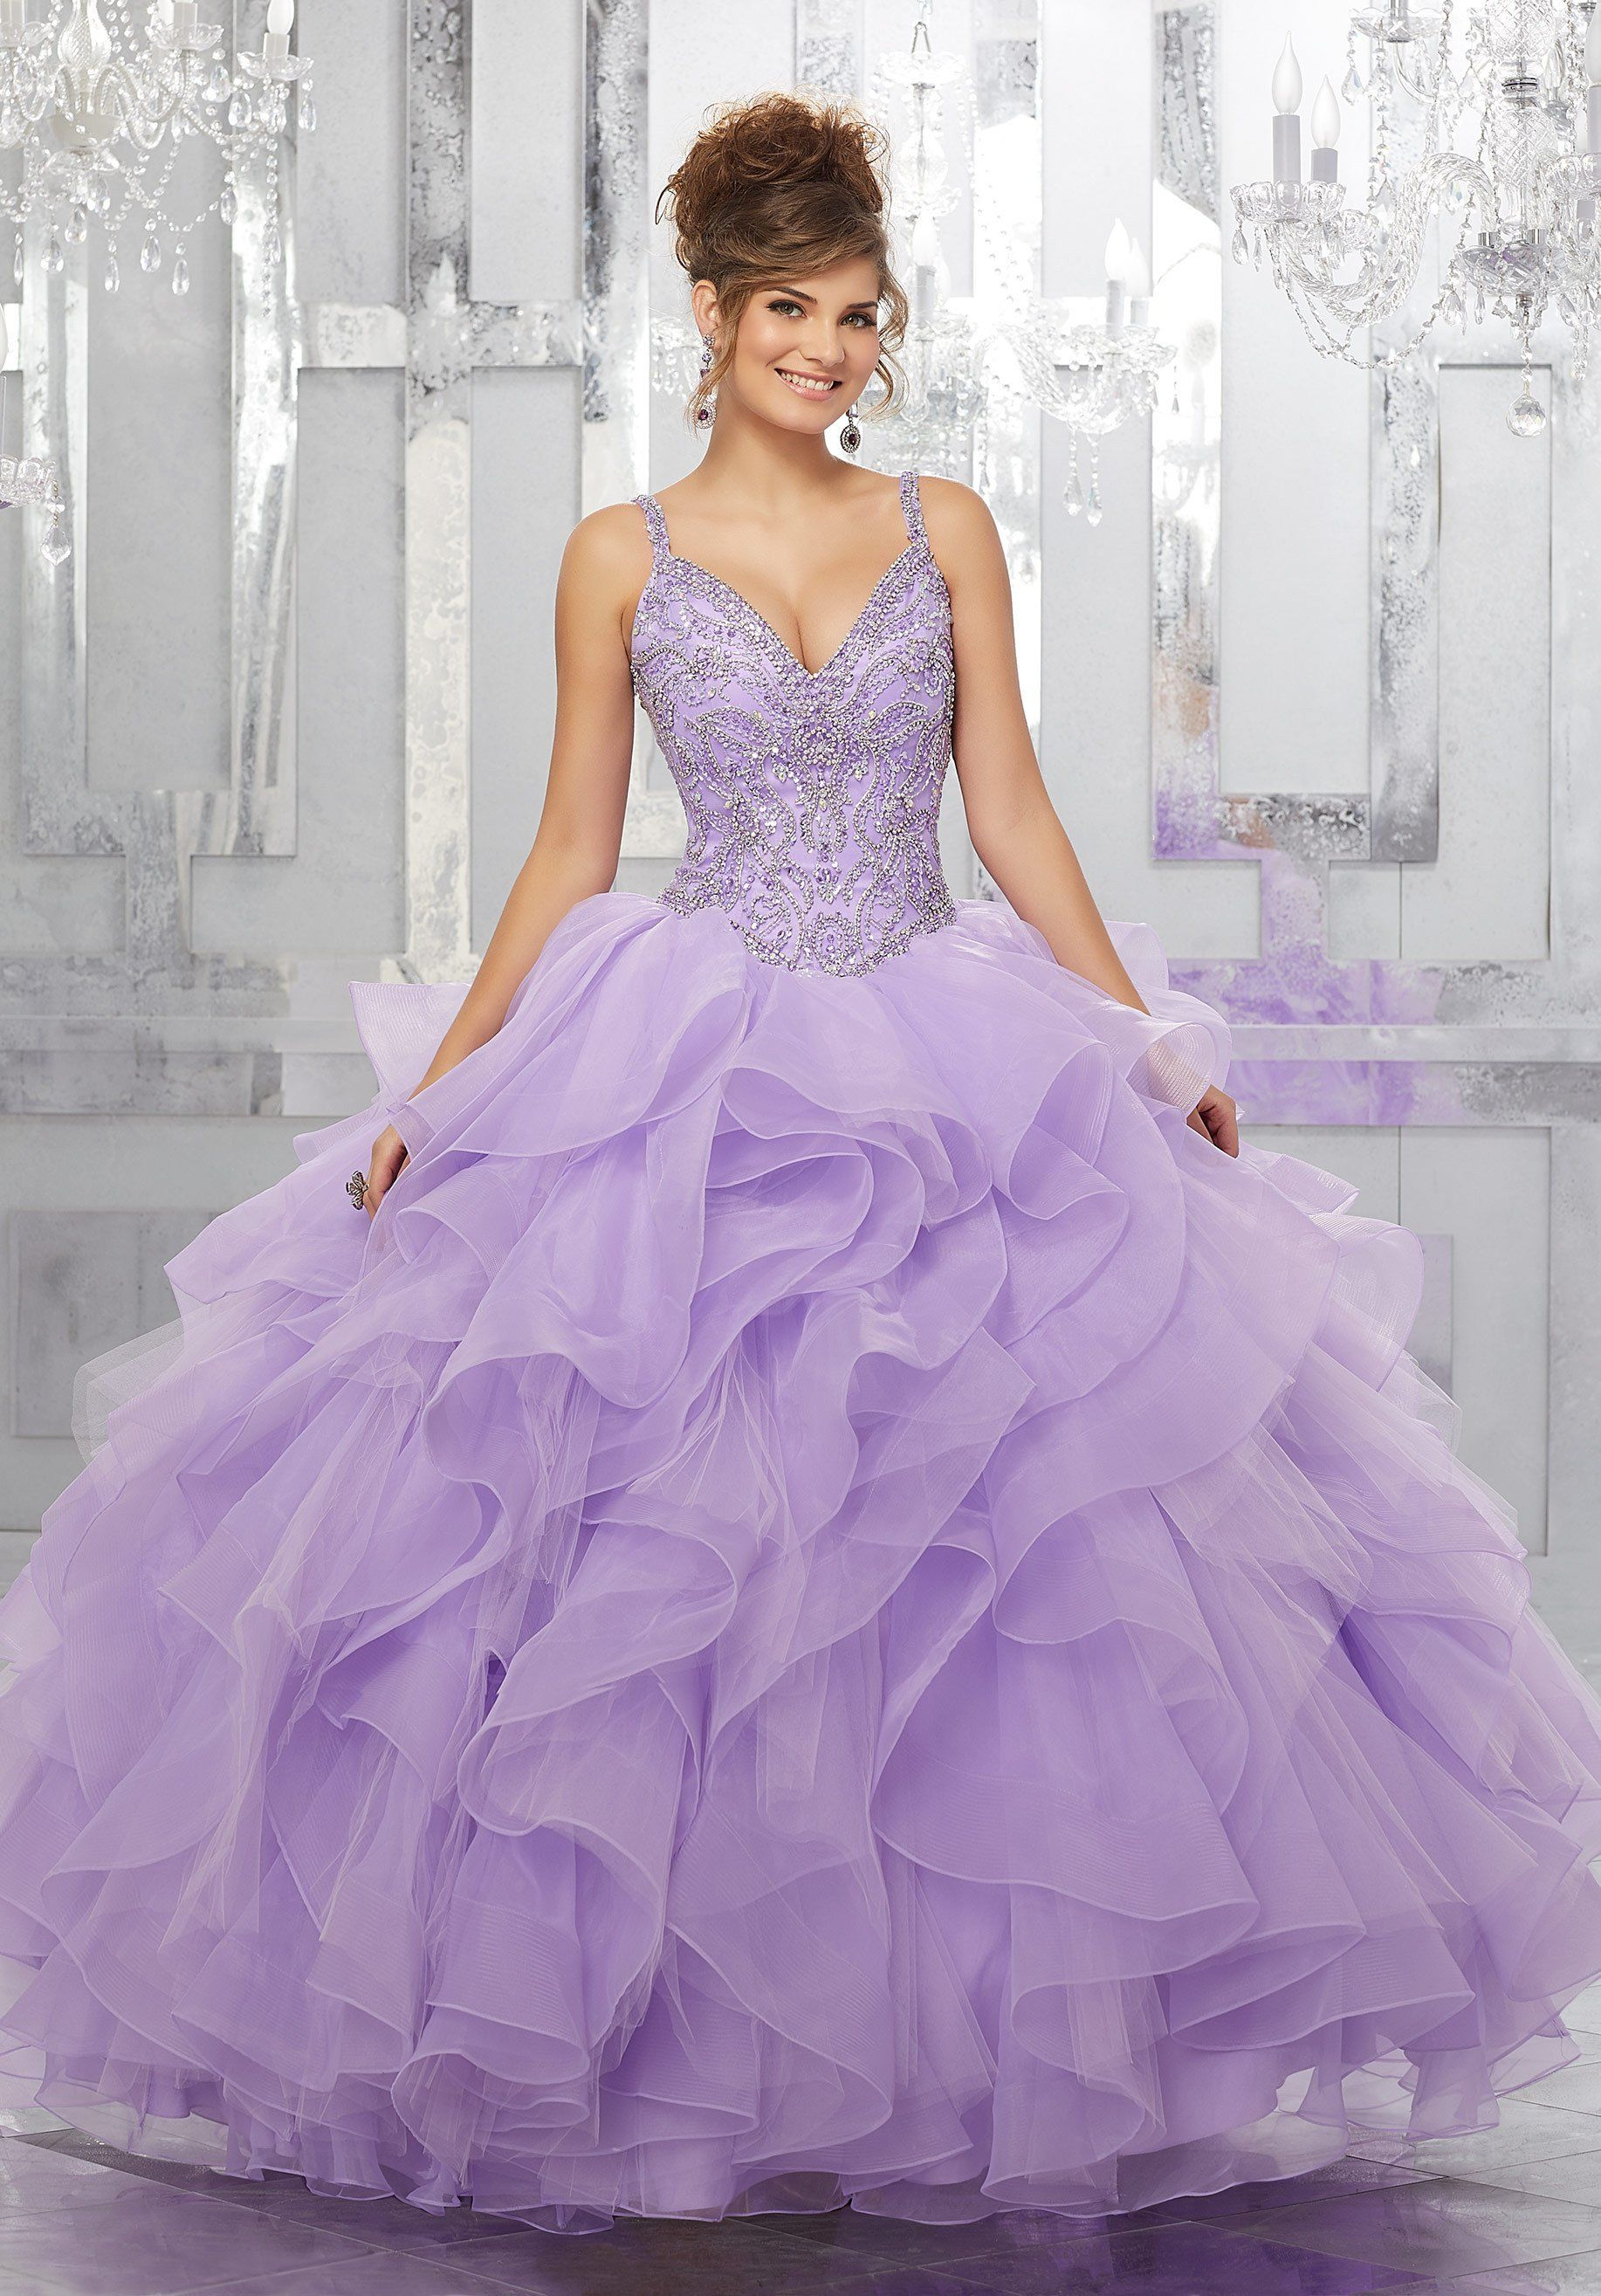 707499b9861 Beaded V-Neck Quinceanera Dress by Mori Lee Vizcaya 89148 in 2019 ...